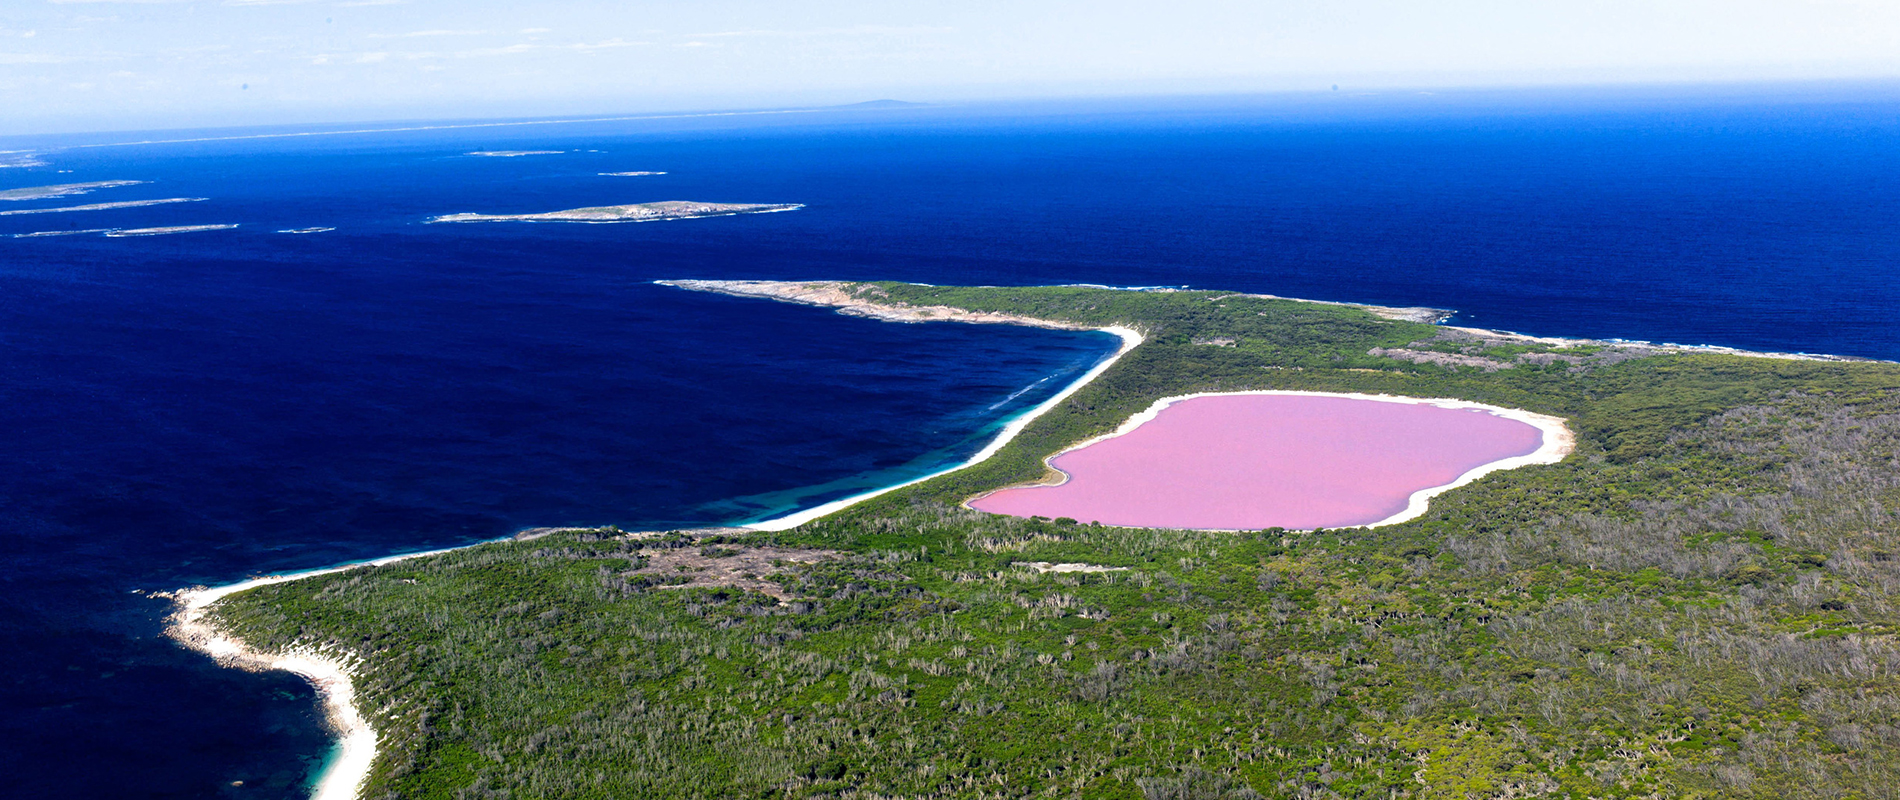 Lake Hillier, The Mystery of the Pink Lake